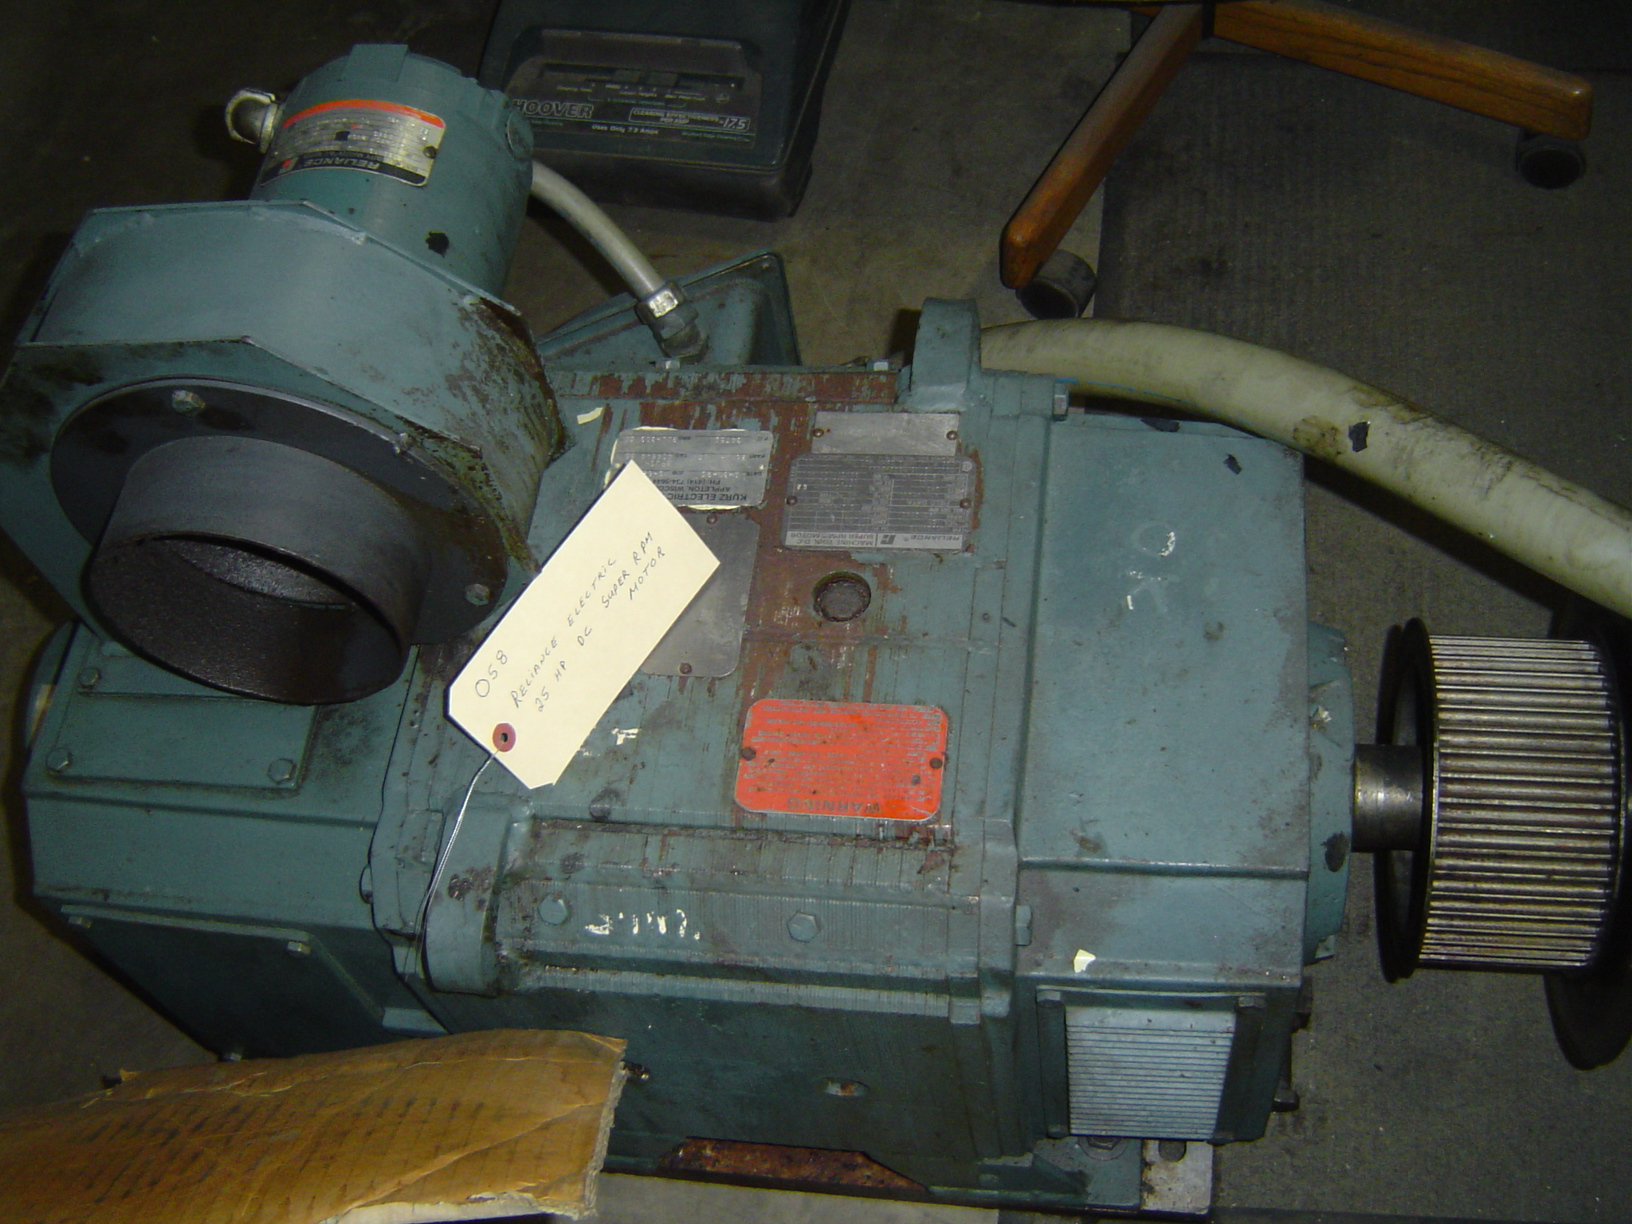 RELIANCE ELECTRIC SUPER RPM MOTOR, 25 HP DC